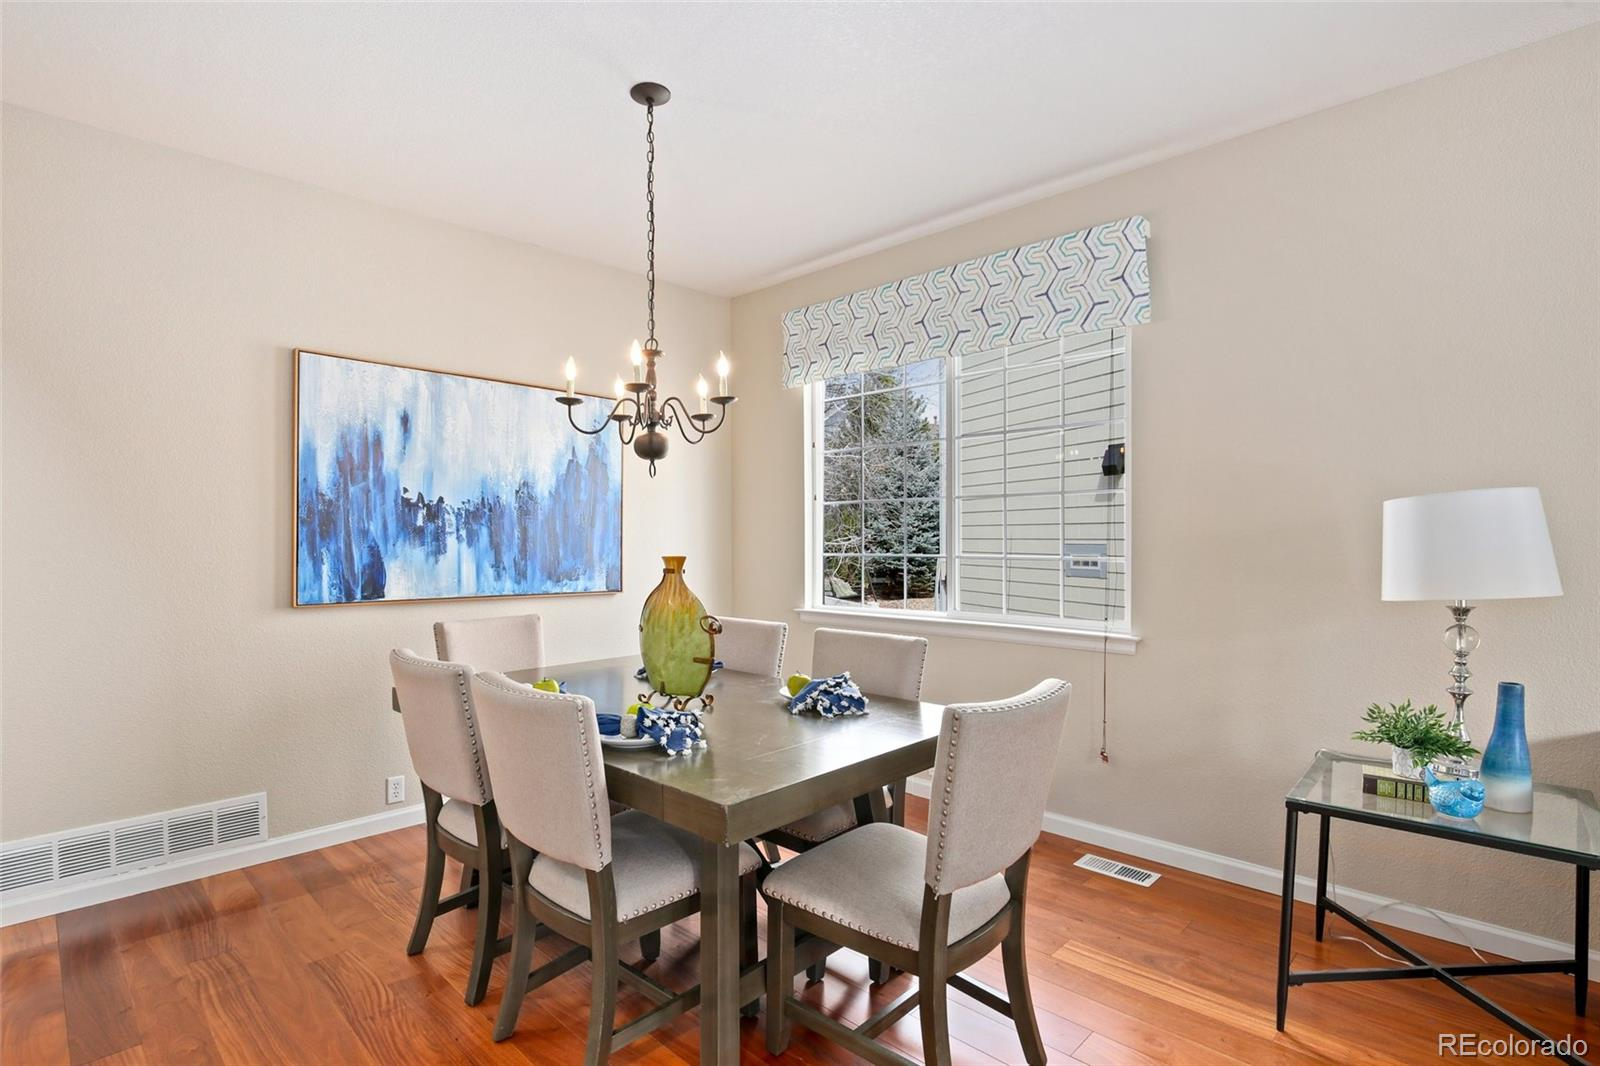 MLS# 7661027 - 5 - 4865 W 116th Court, Westminster, CO 80031